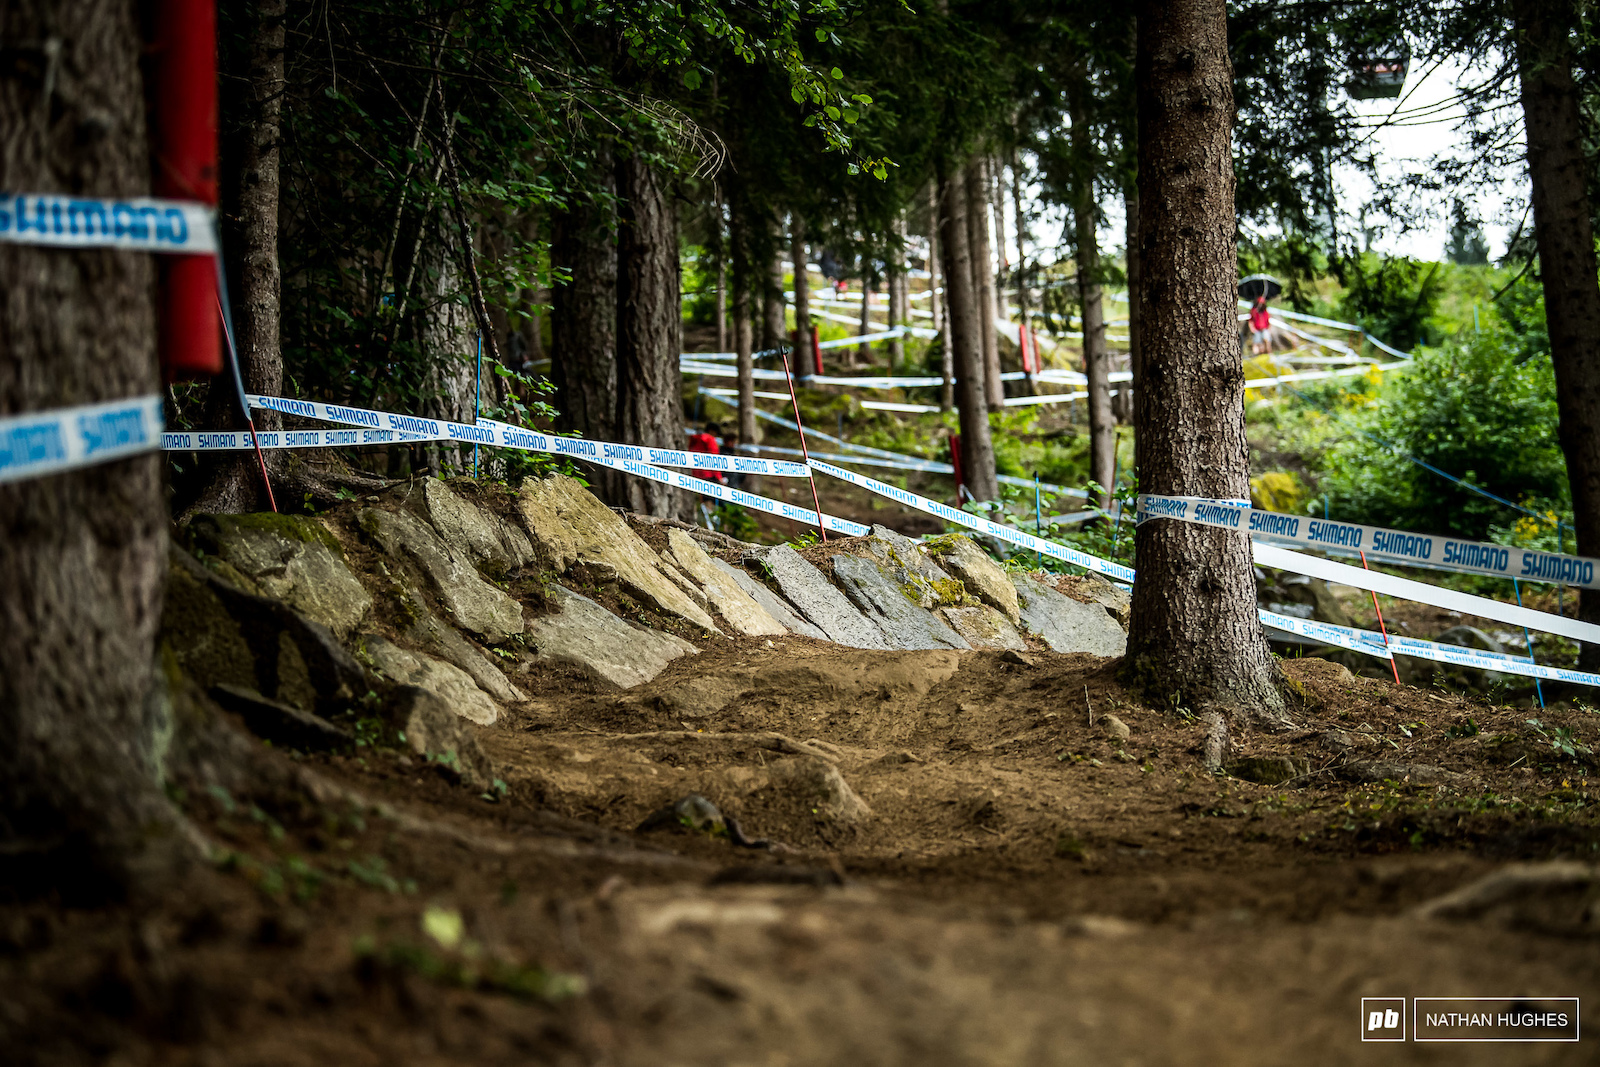 A nice relaxing berms made of wet jagged slabs.